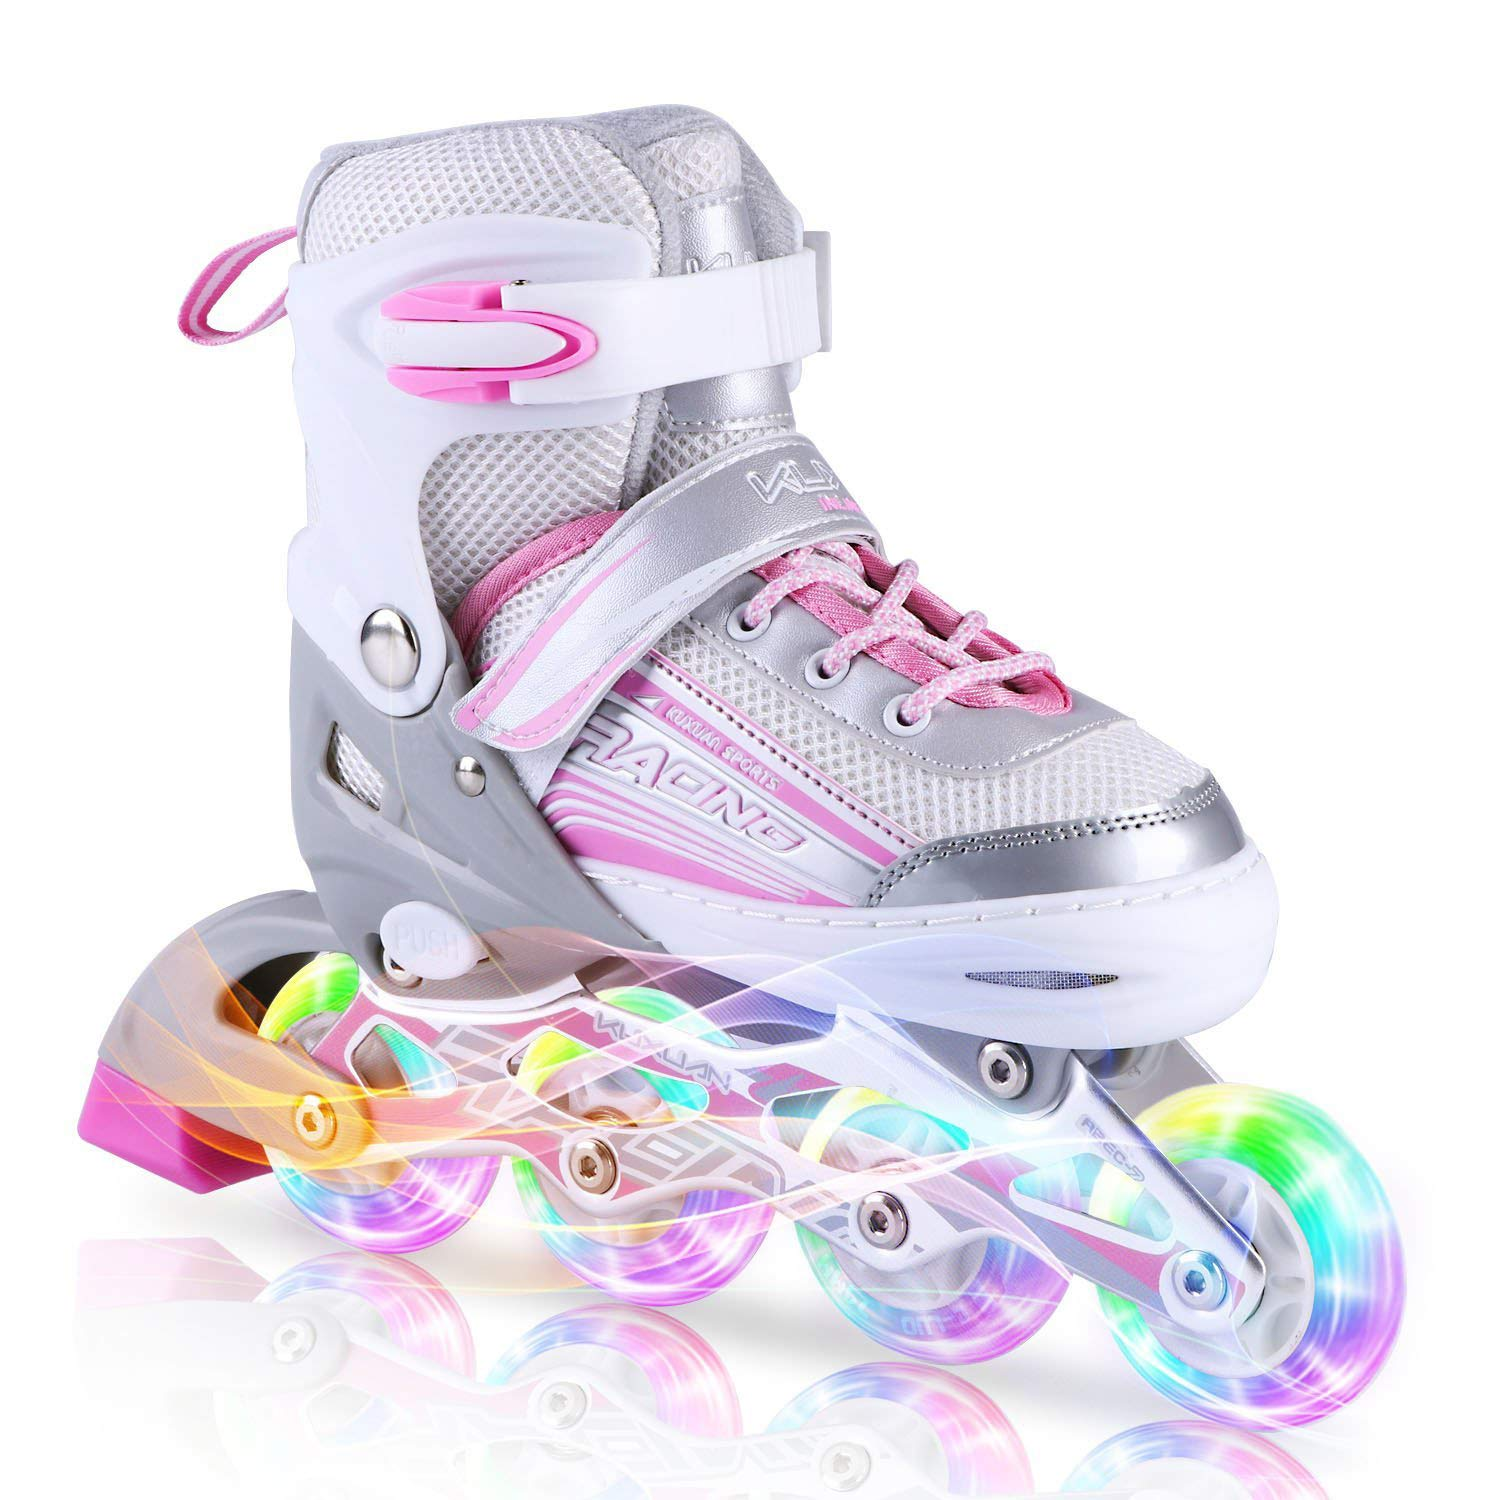 Kuxuan Saya Inline Skates Adjustable for Kids,Girls Rollerblades with All Wheels Light up,Fun Illuminating for Girls and Ladies - Medium by Kuxuan